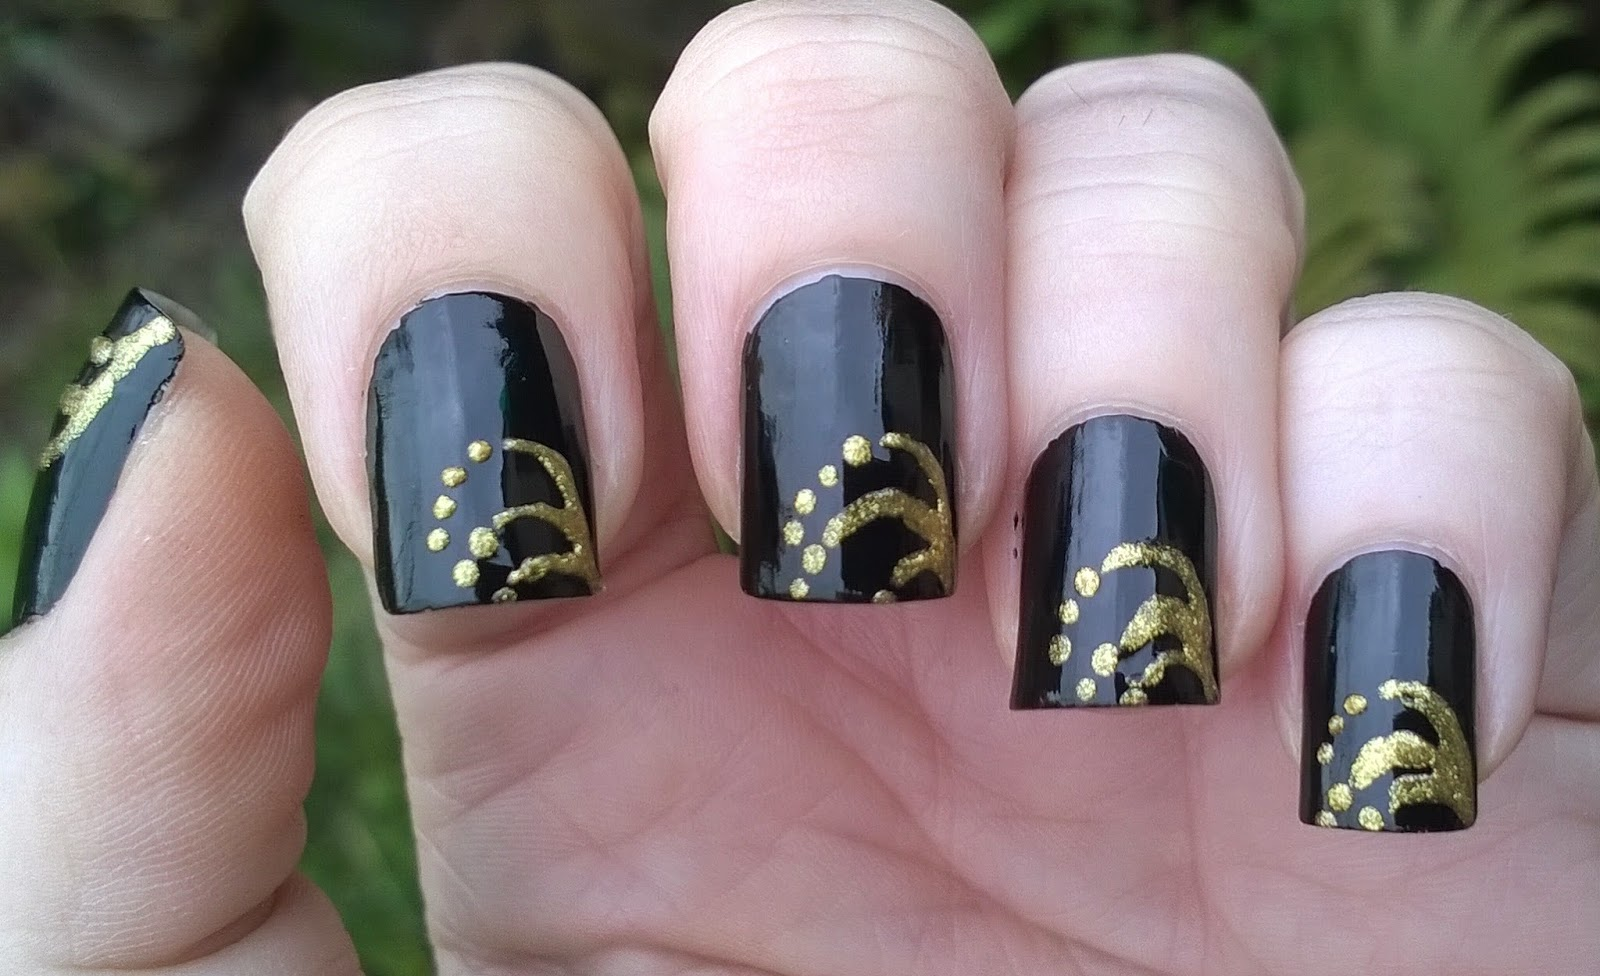 Life World Women Blackgolden Party Nails For New Years Eve